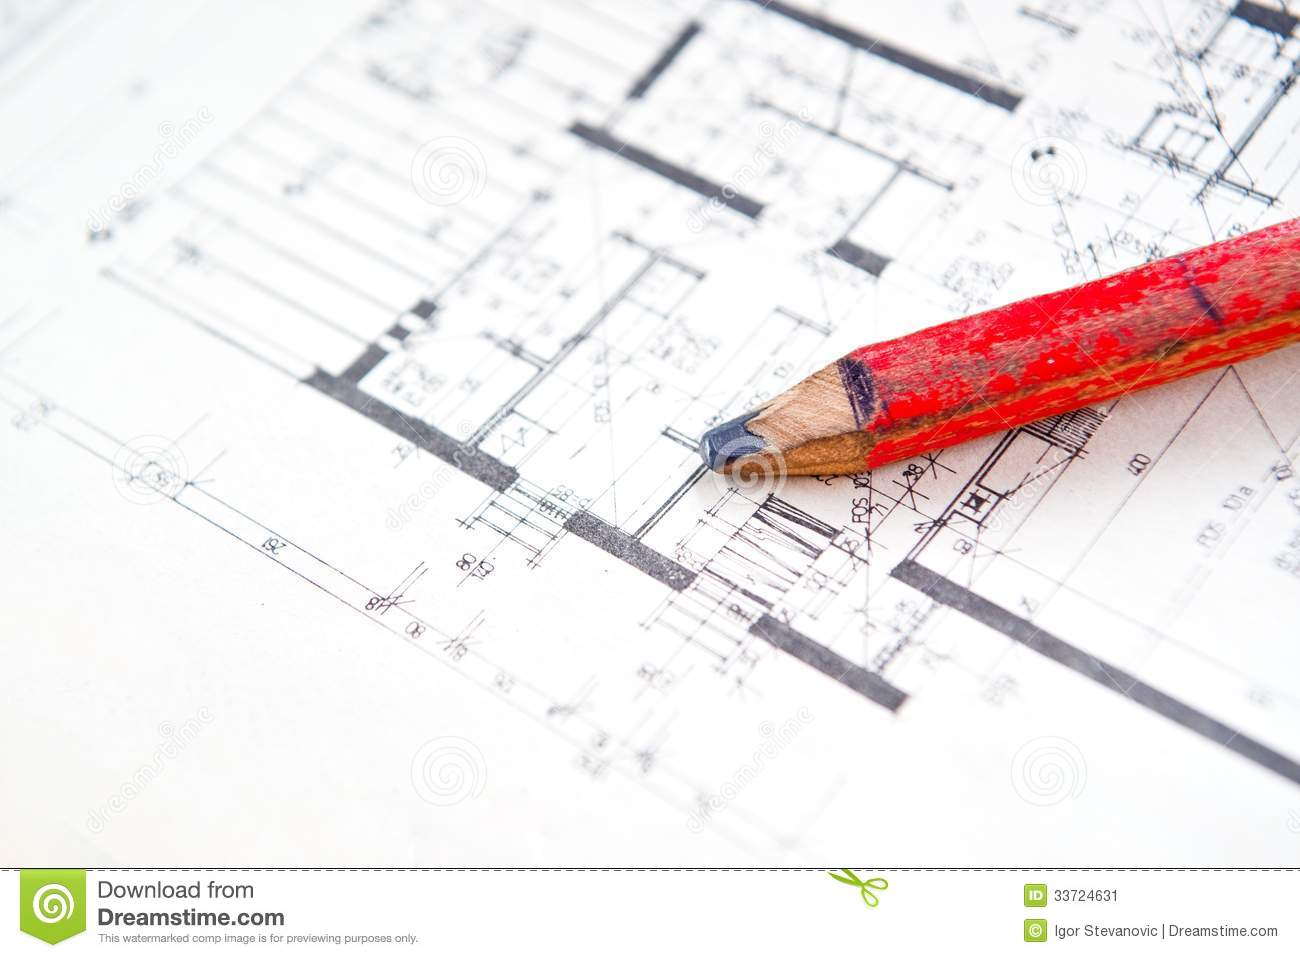 Stock Image Interior Planing Old Lead Pencil Over Planning Document Close Up Shallow Depth Field Andselective Focus Image33724631 on El Floor Plan Design